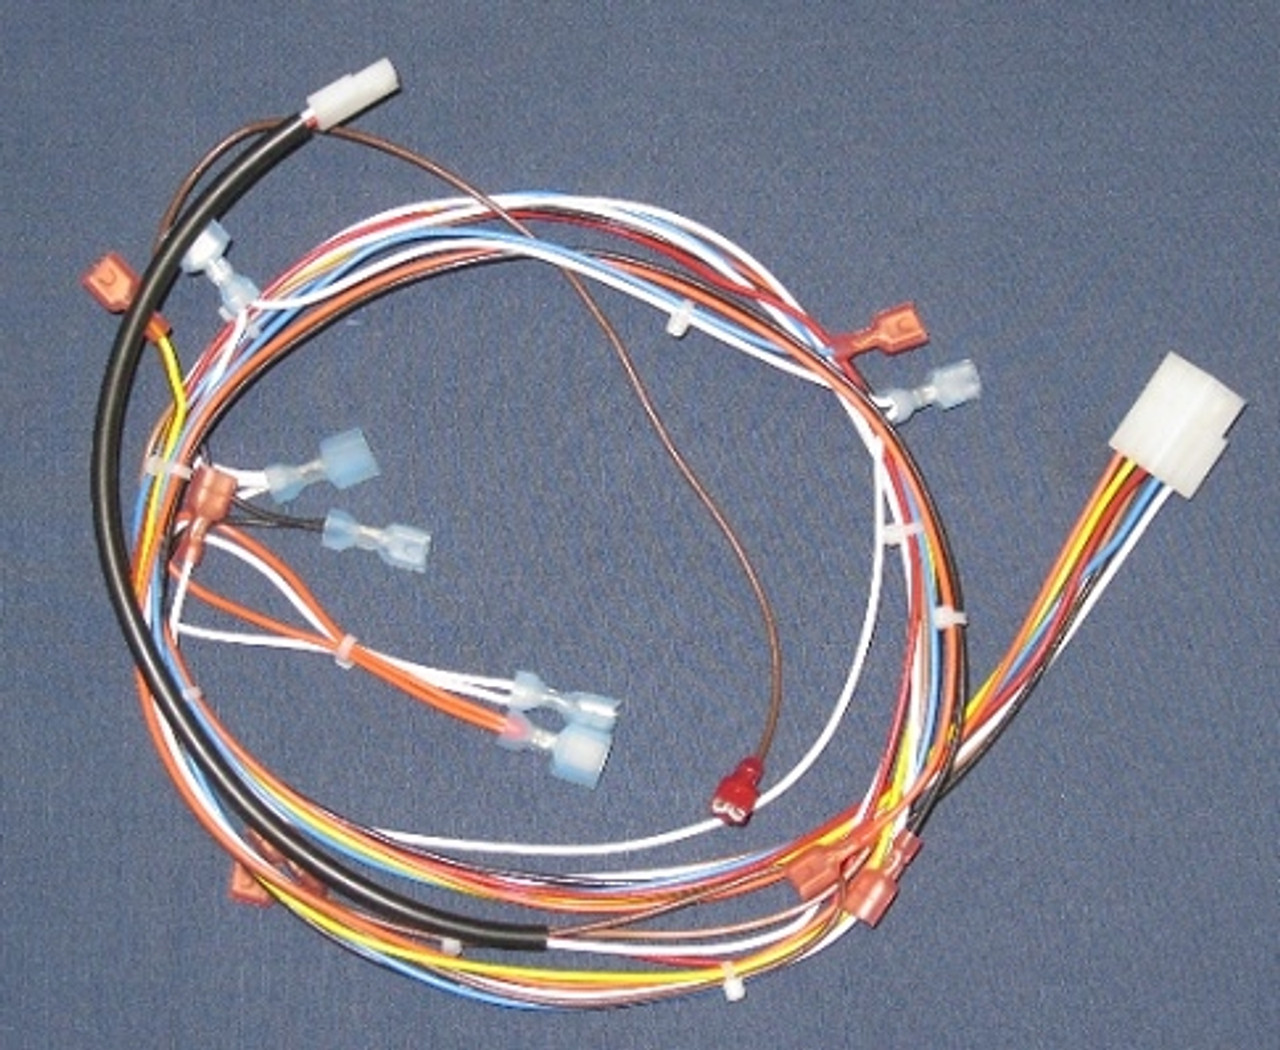 Acu-tron Wire Harness For Glow Boy Pellet Stoves